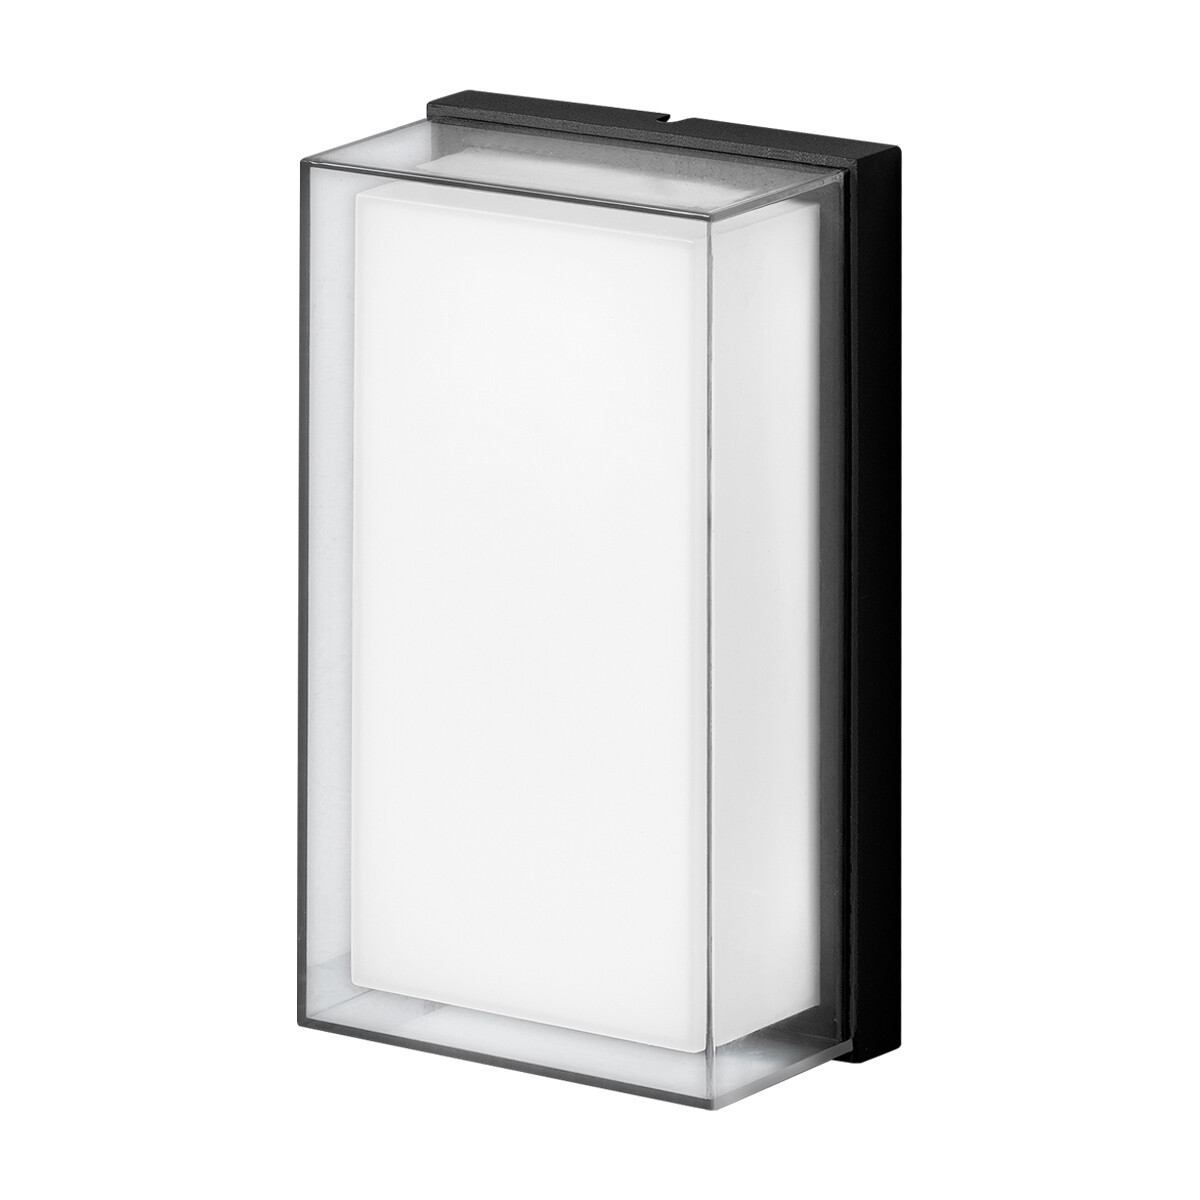 RIGHEL FLAT surface-mounted luminaire 11W 1050lm Grafite